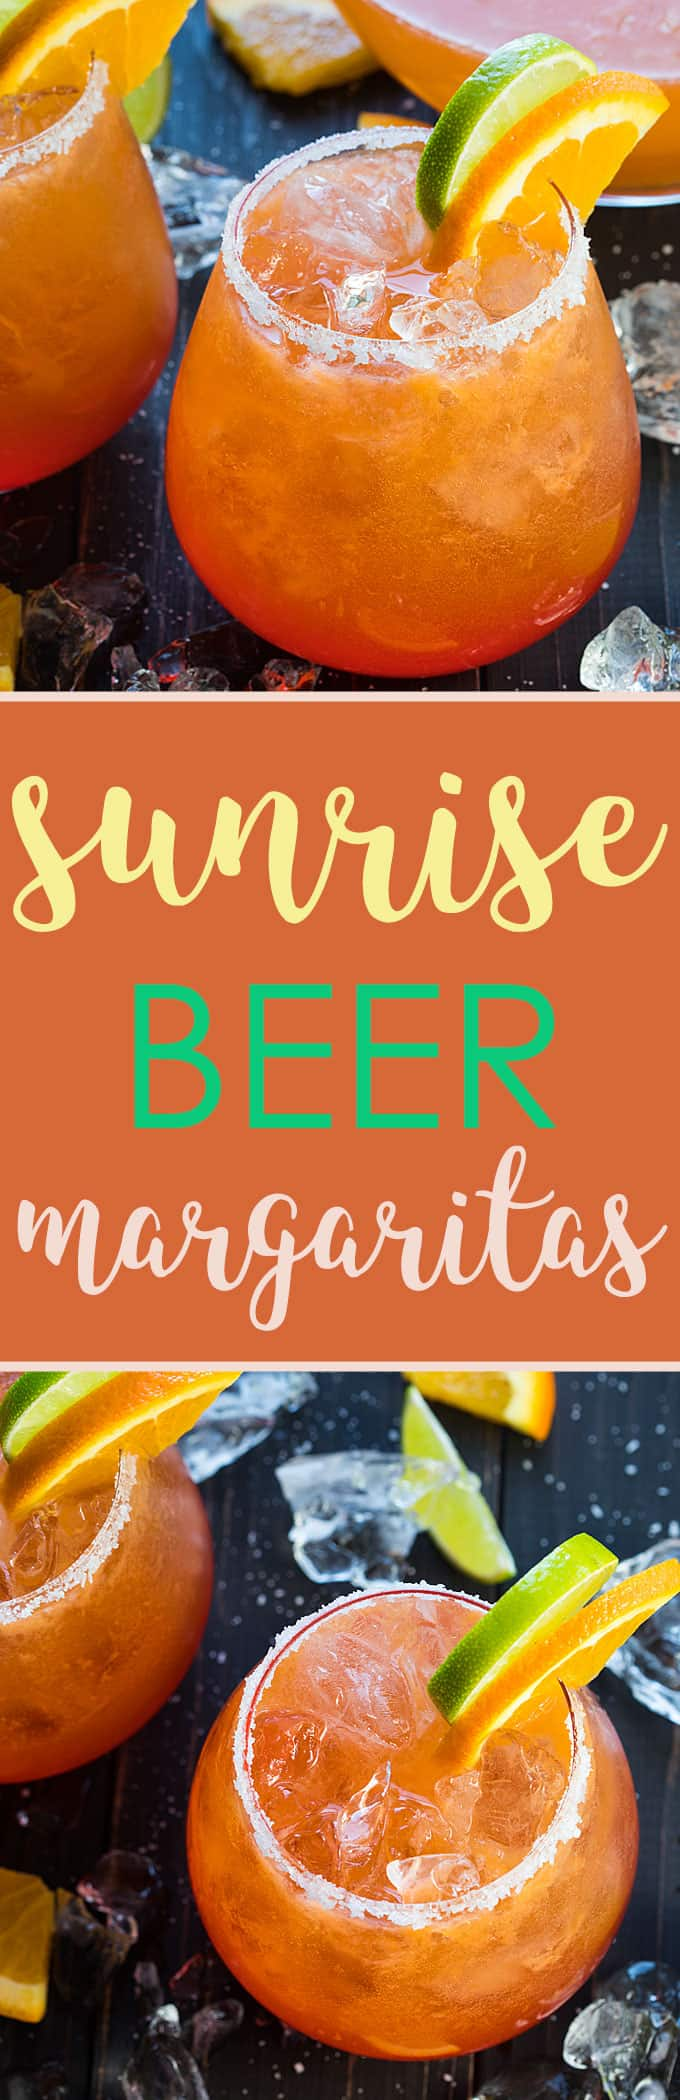 A two image vertical collage of sunrise beer margarita with overlay text in the center.